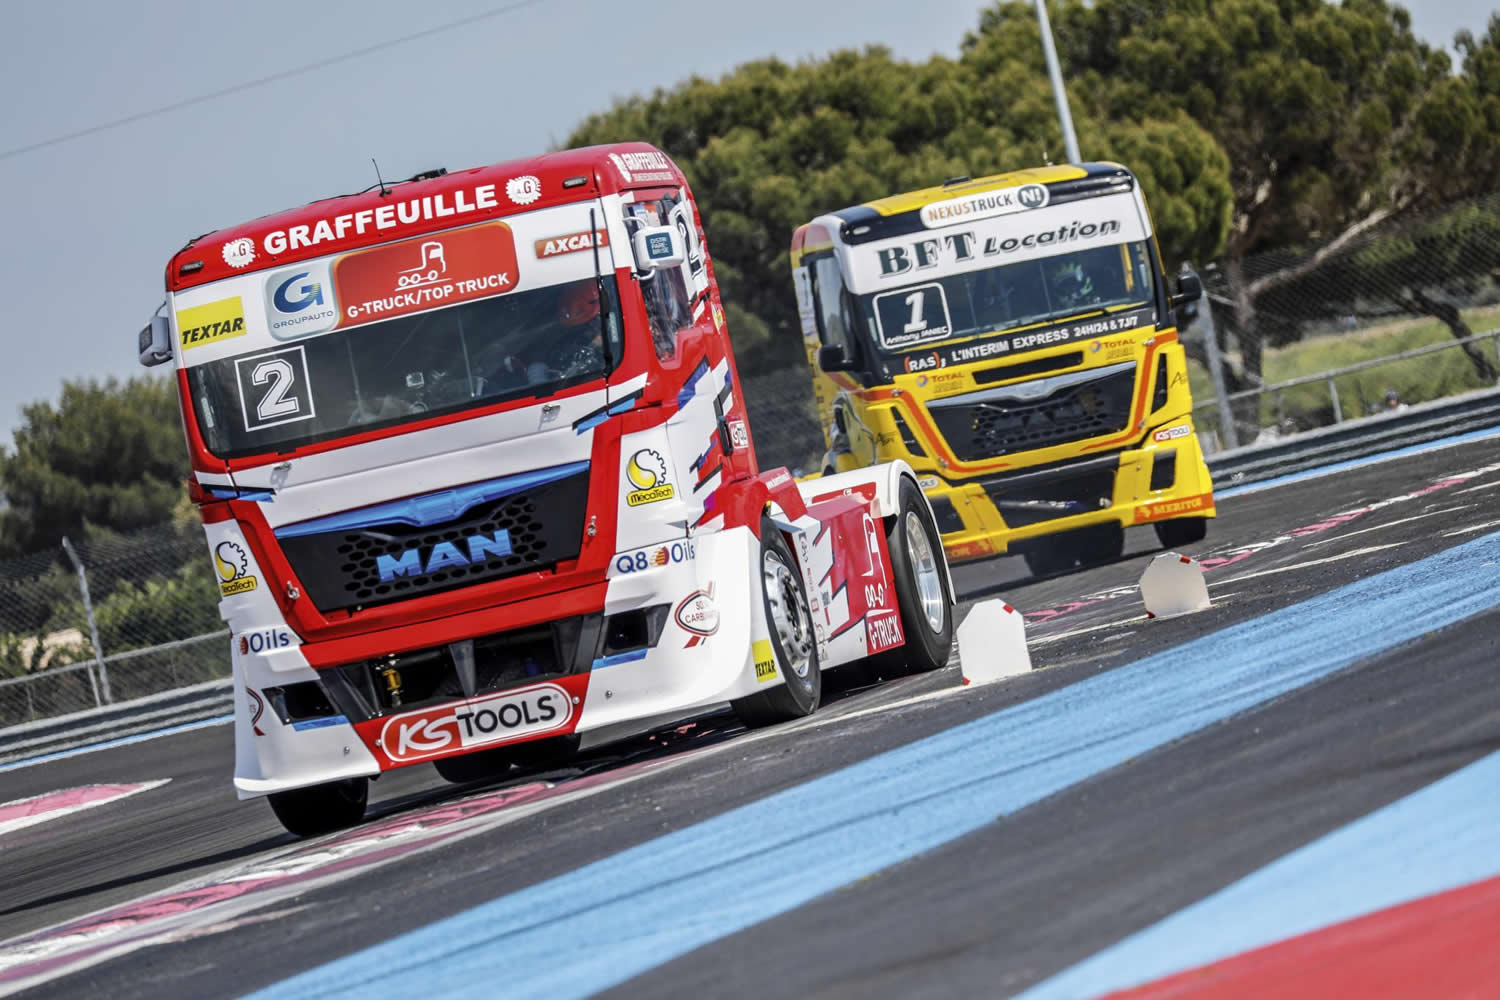 Grand Prix Camions - copyright Marc de Mattia